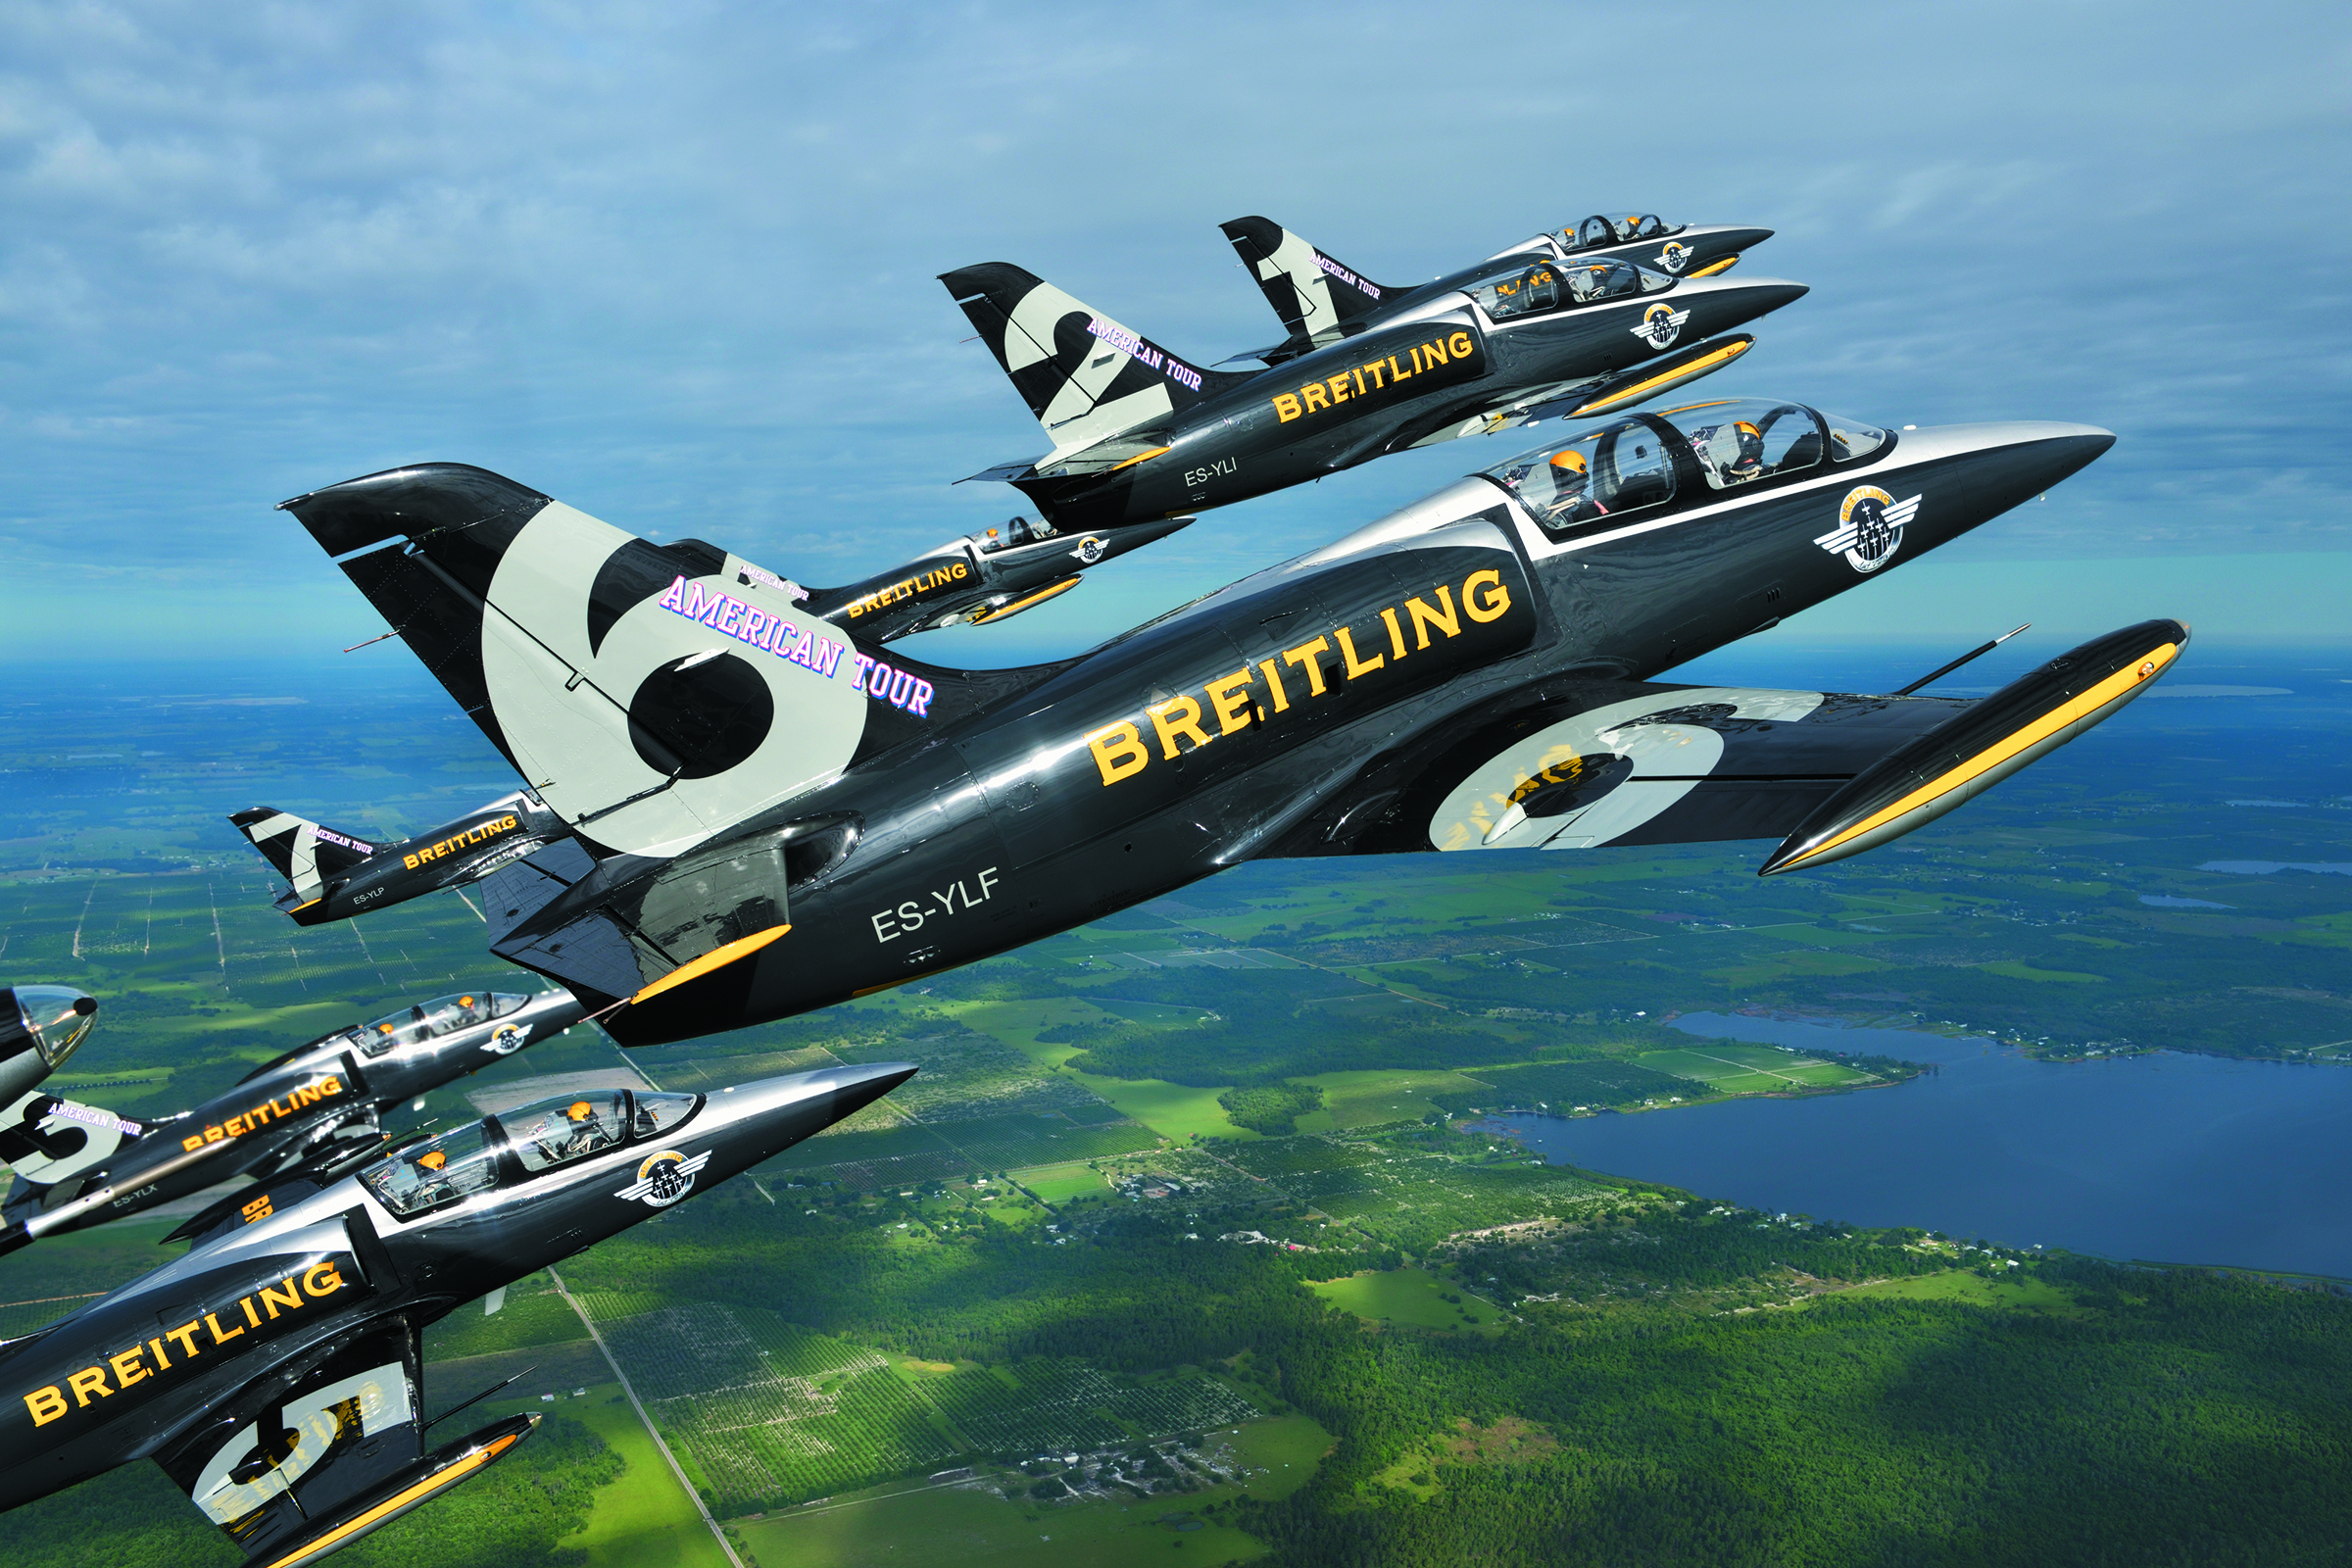 Breitling Jet Team - Lakeland-Florida - USA